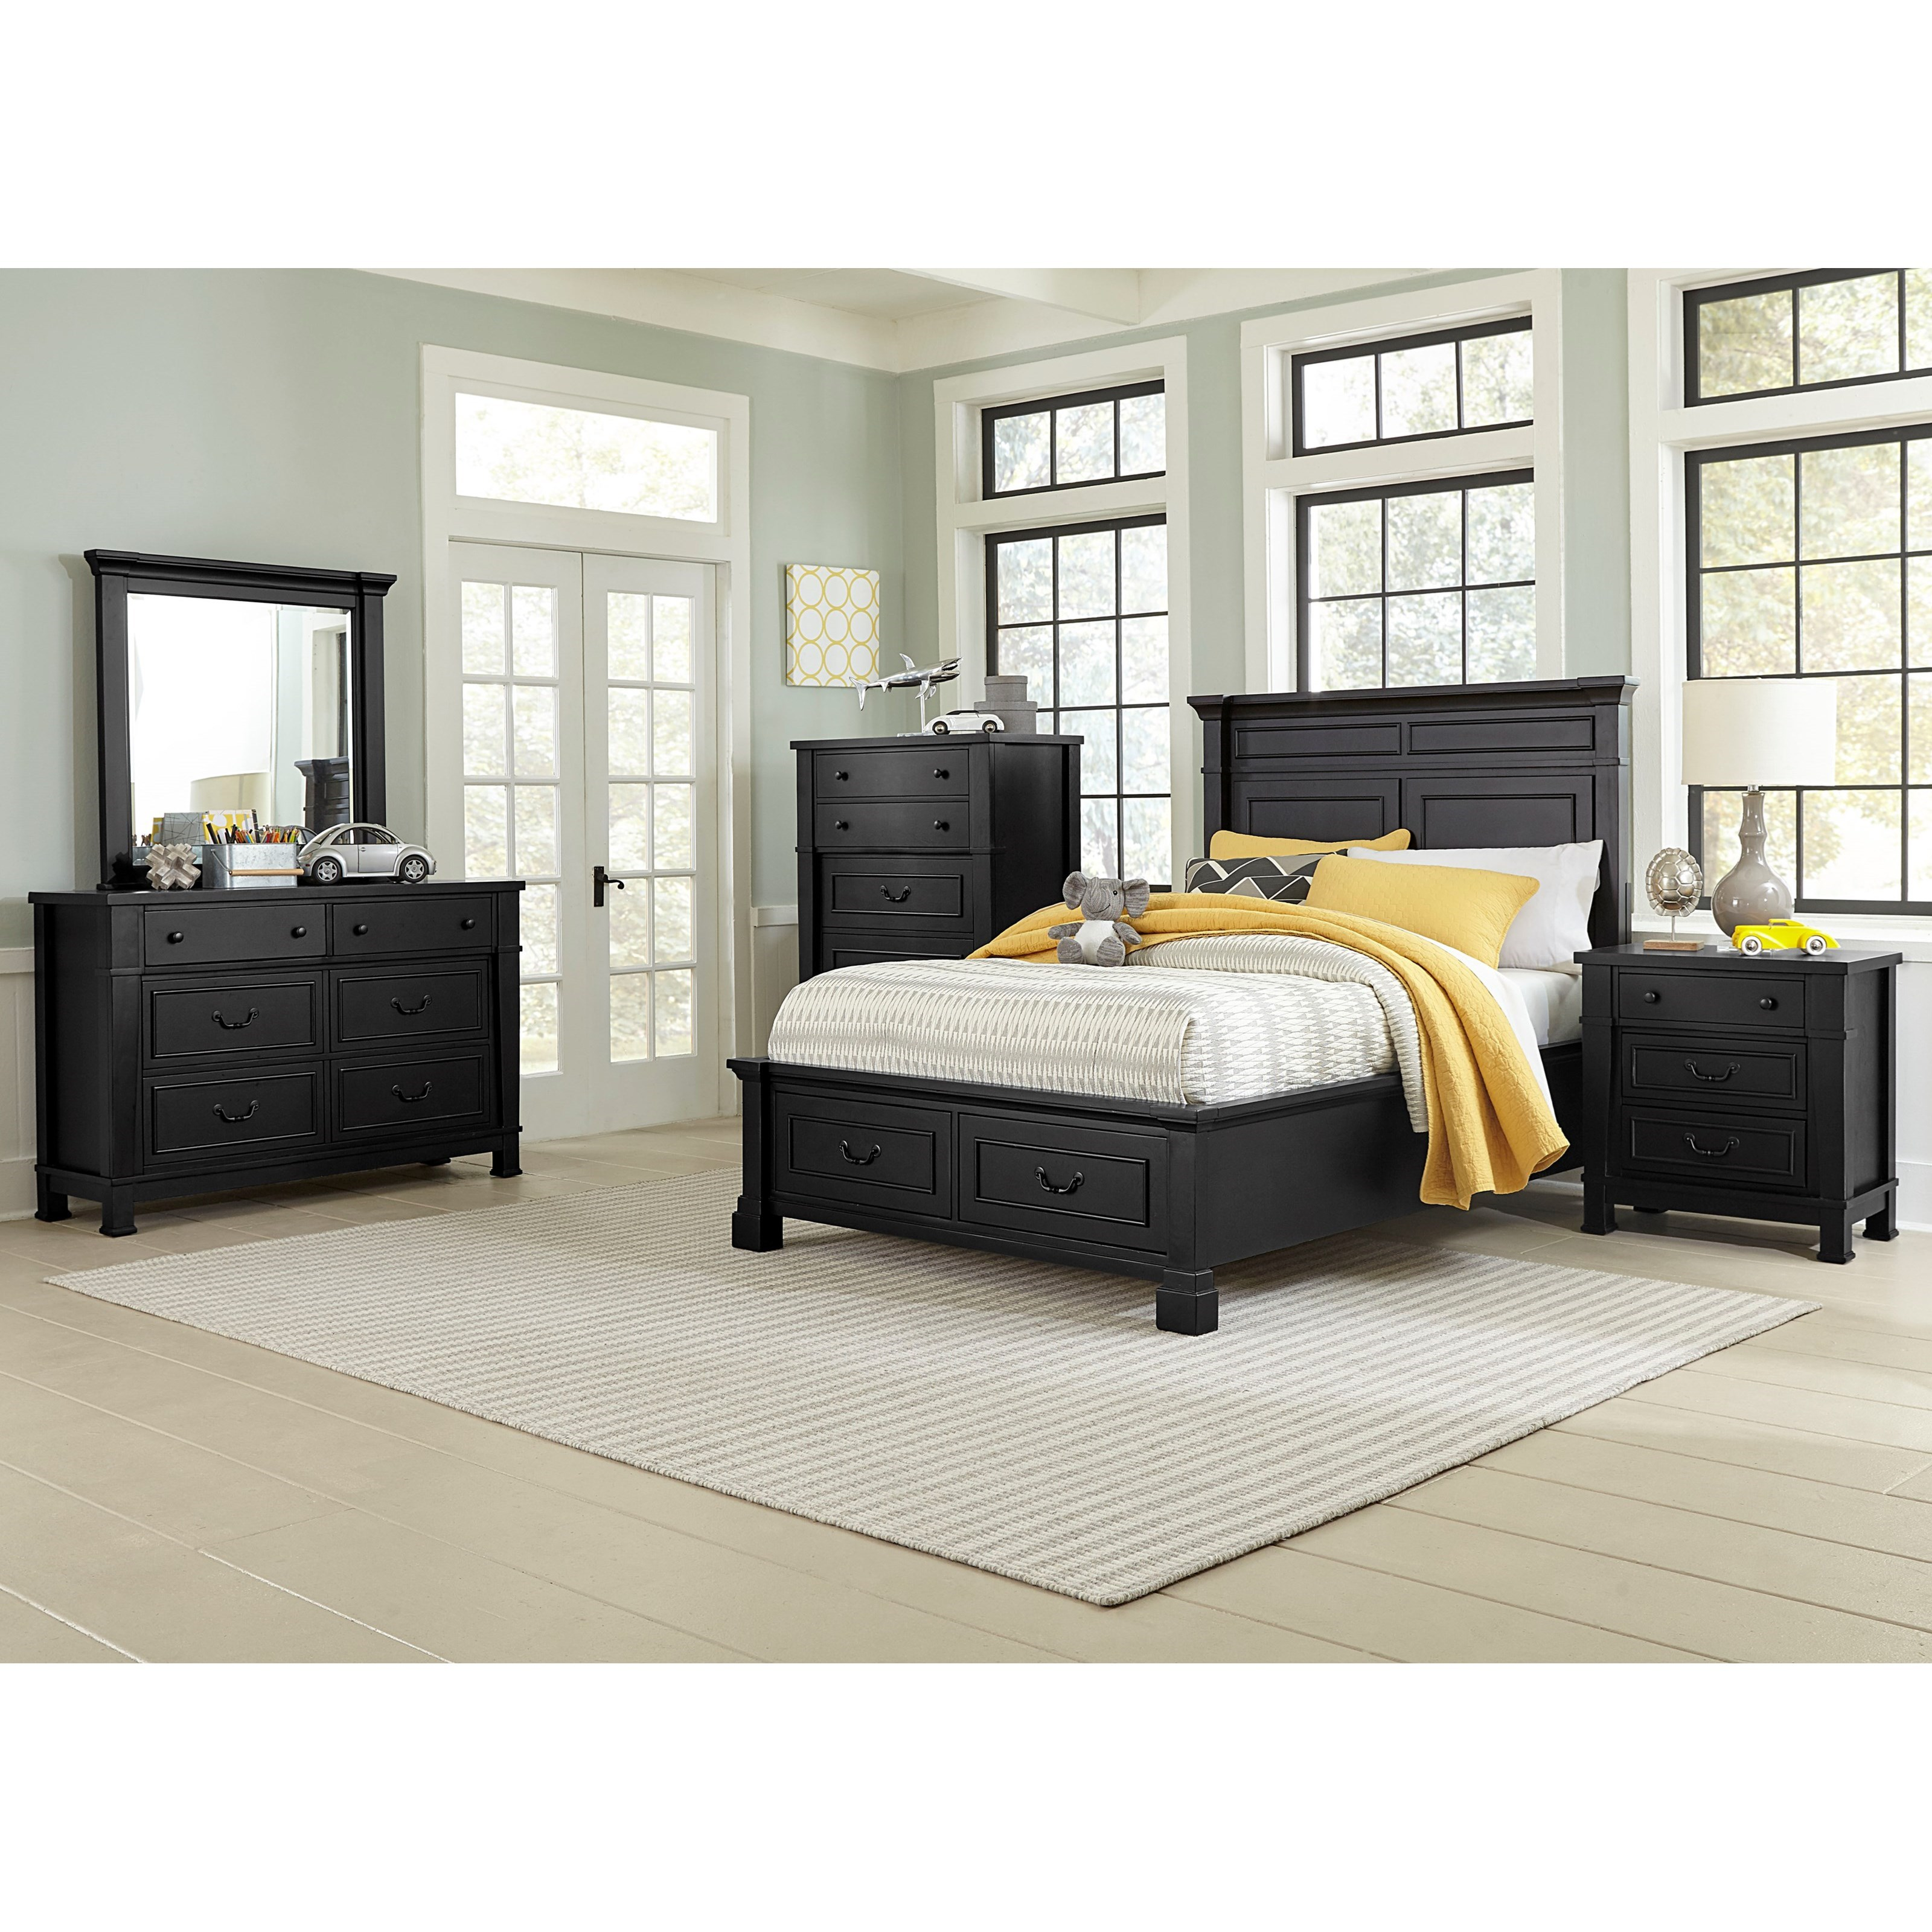 Annapolis Full Bedroom Group by Standard Furniture at Beds N Stuff